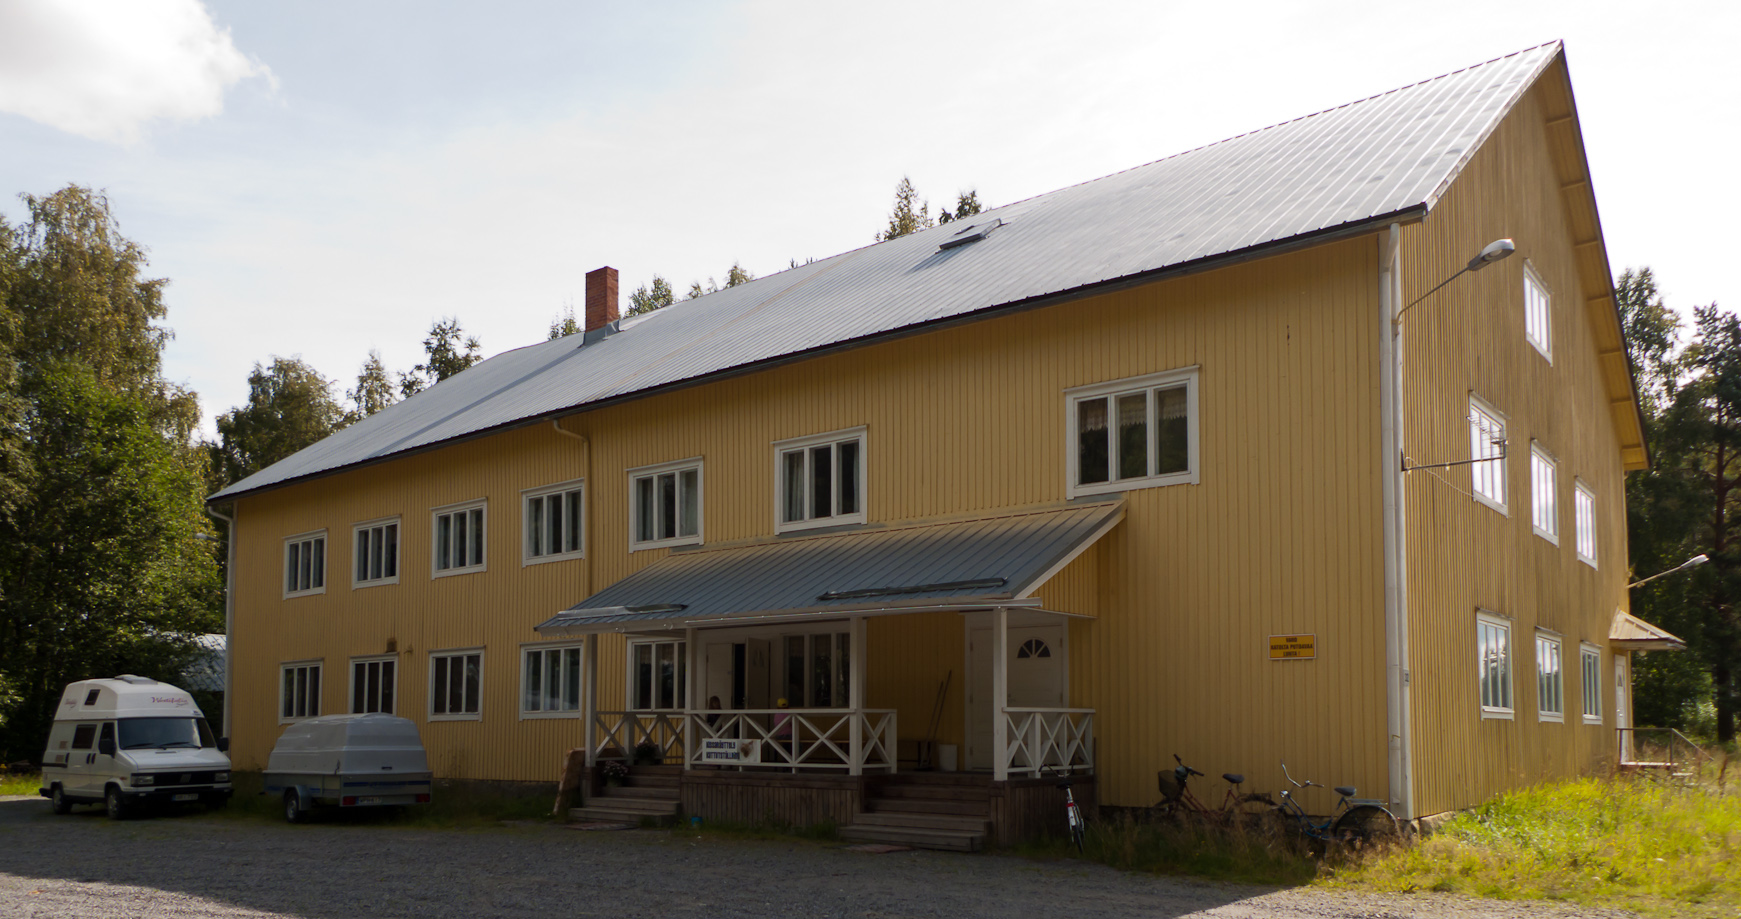 Tuurin Nuorisoseurantalo, photo 176015, 2011-08-13